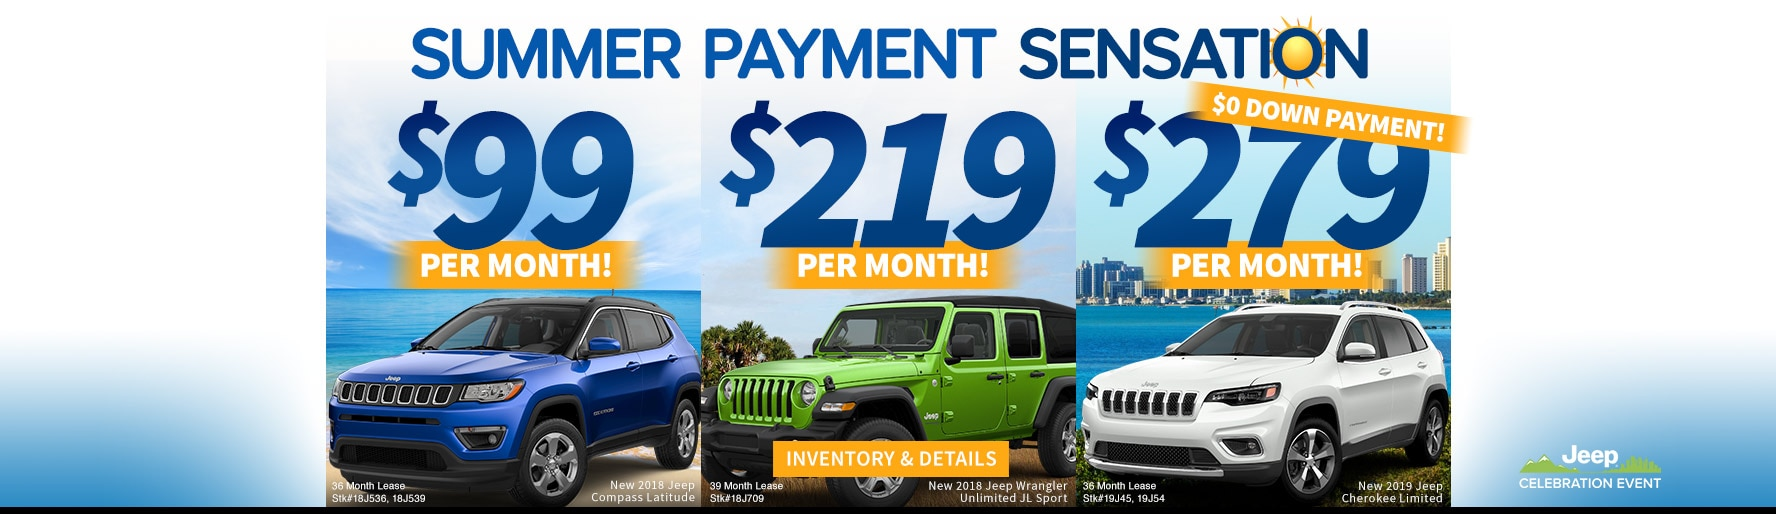 Ferman Chrysler Jeep Dodge Ram of New Port Richey | New ...